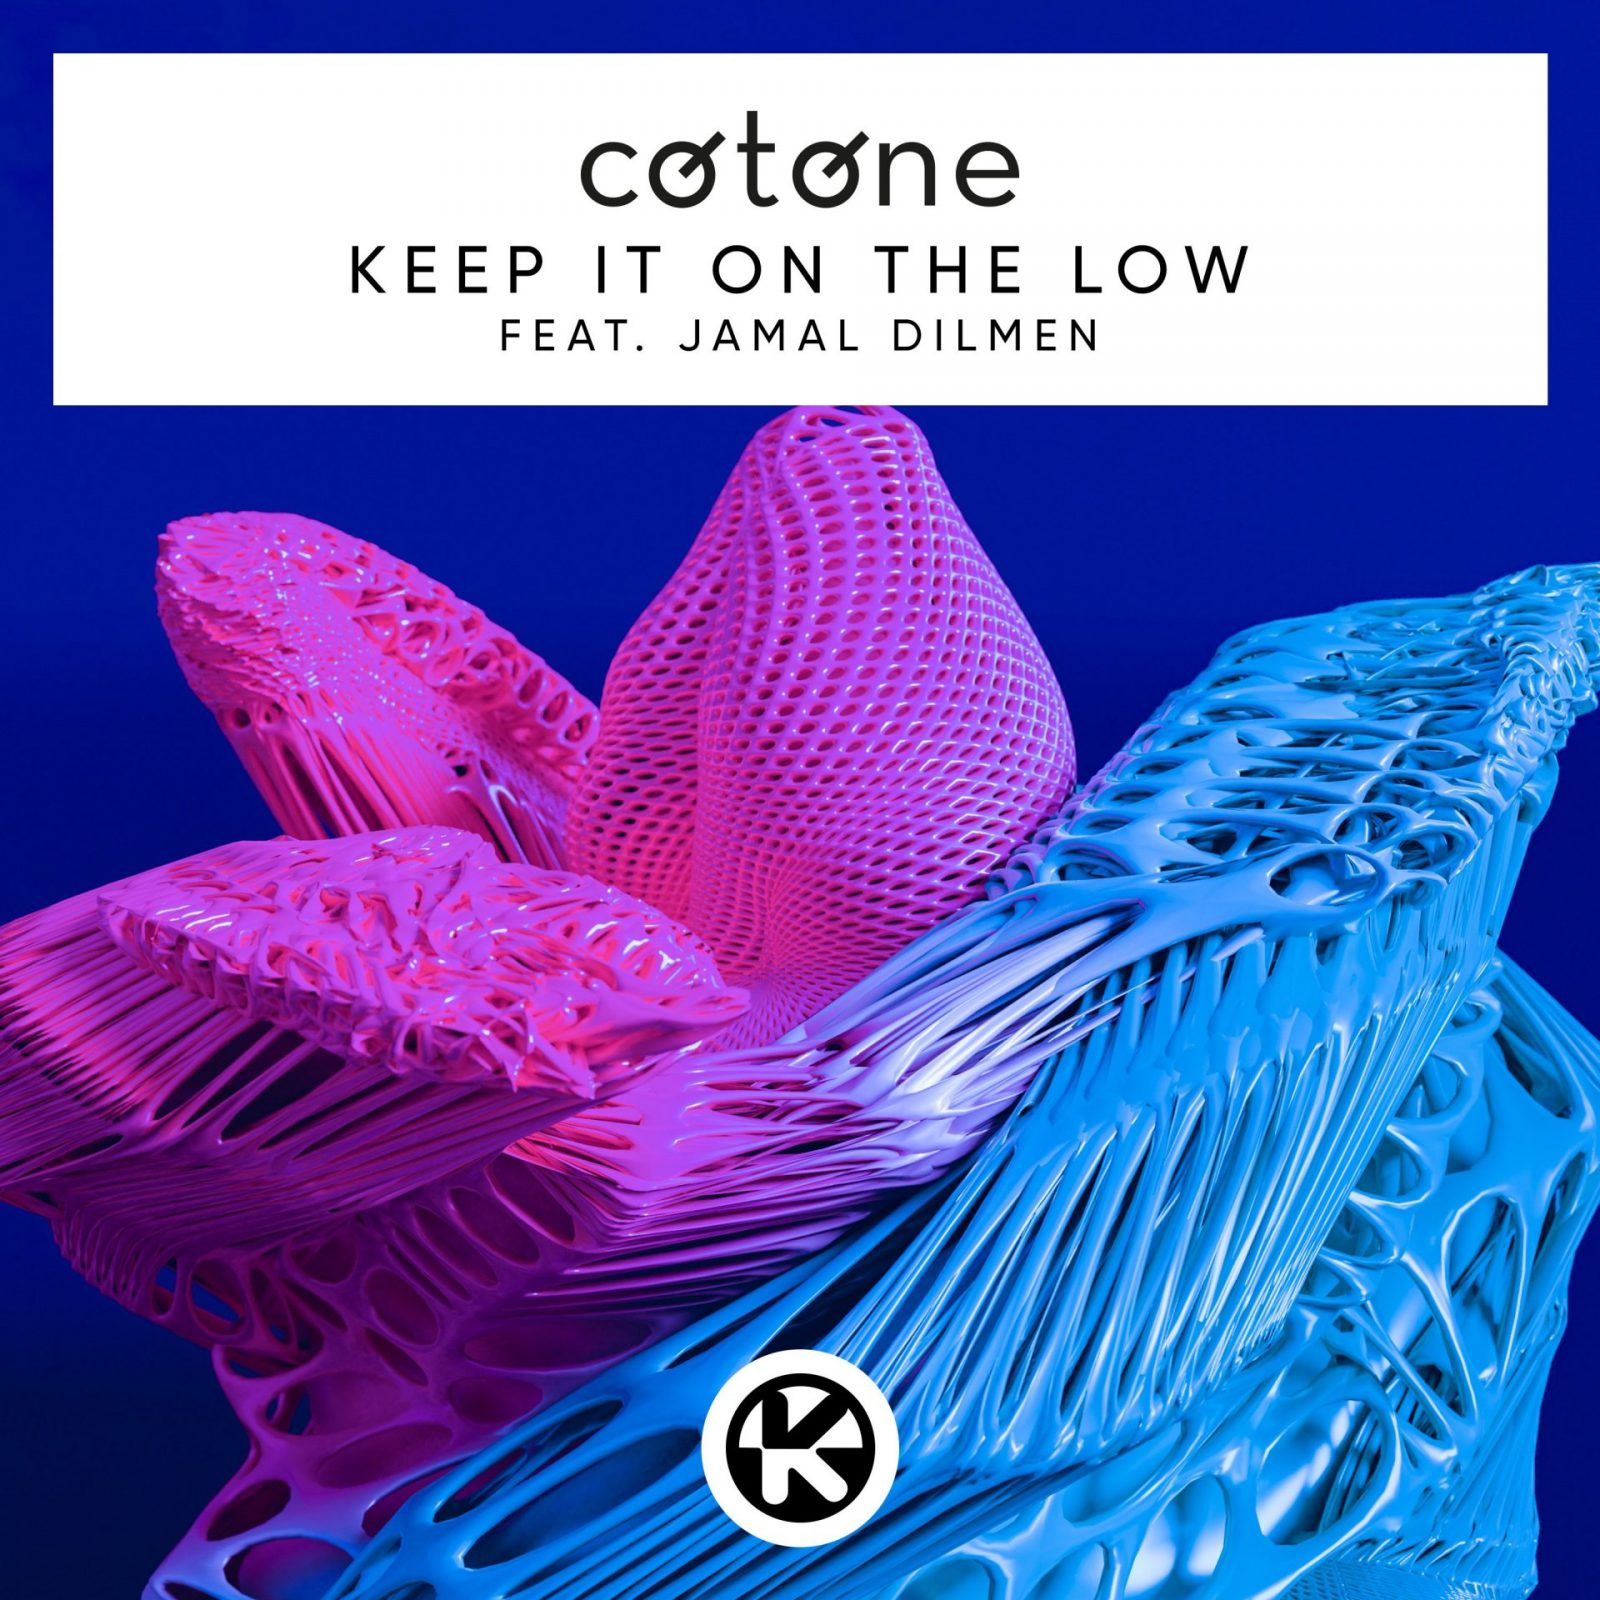 COTONE FEAT. JAMAL DILMEN - KEEP IT ON THE LOW